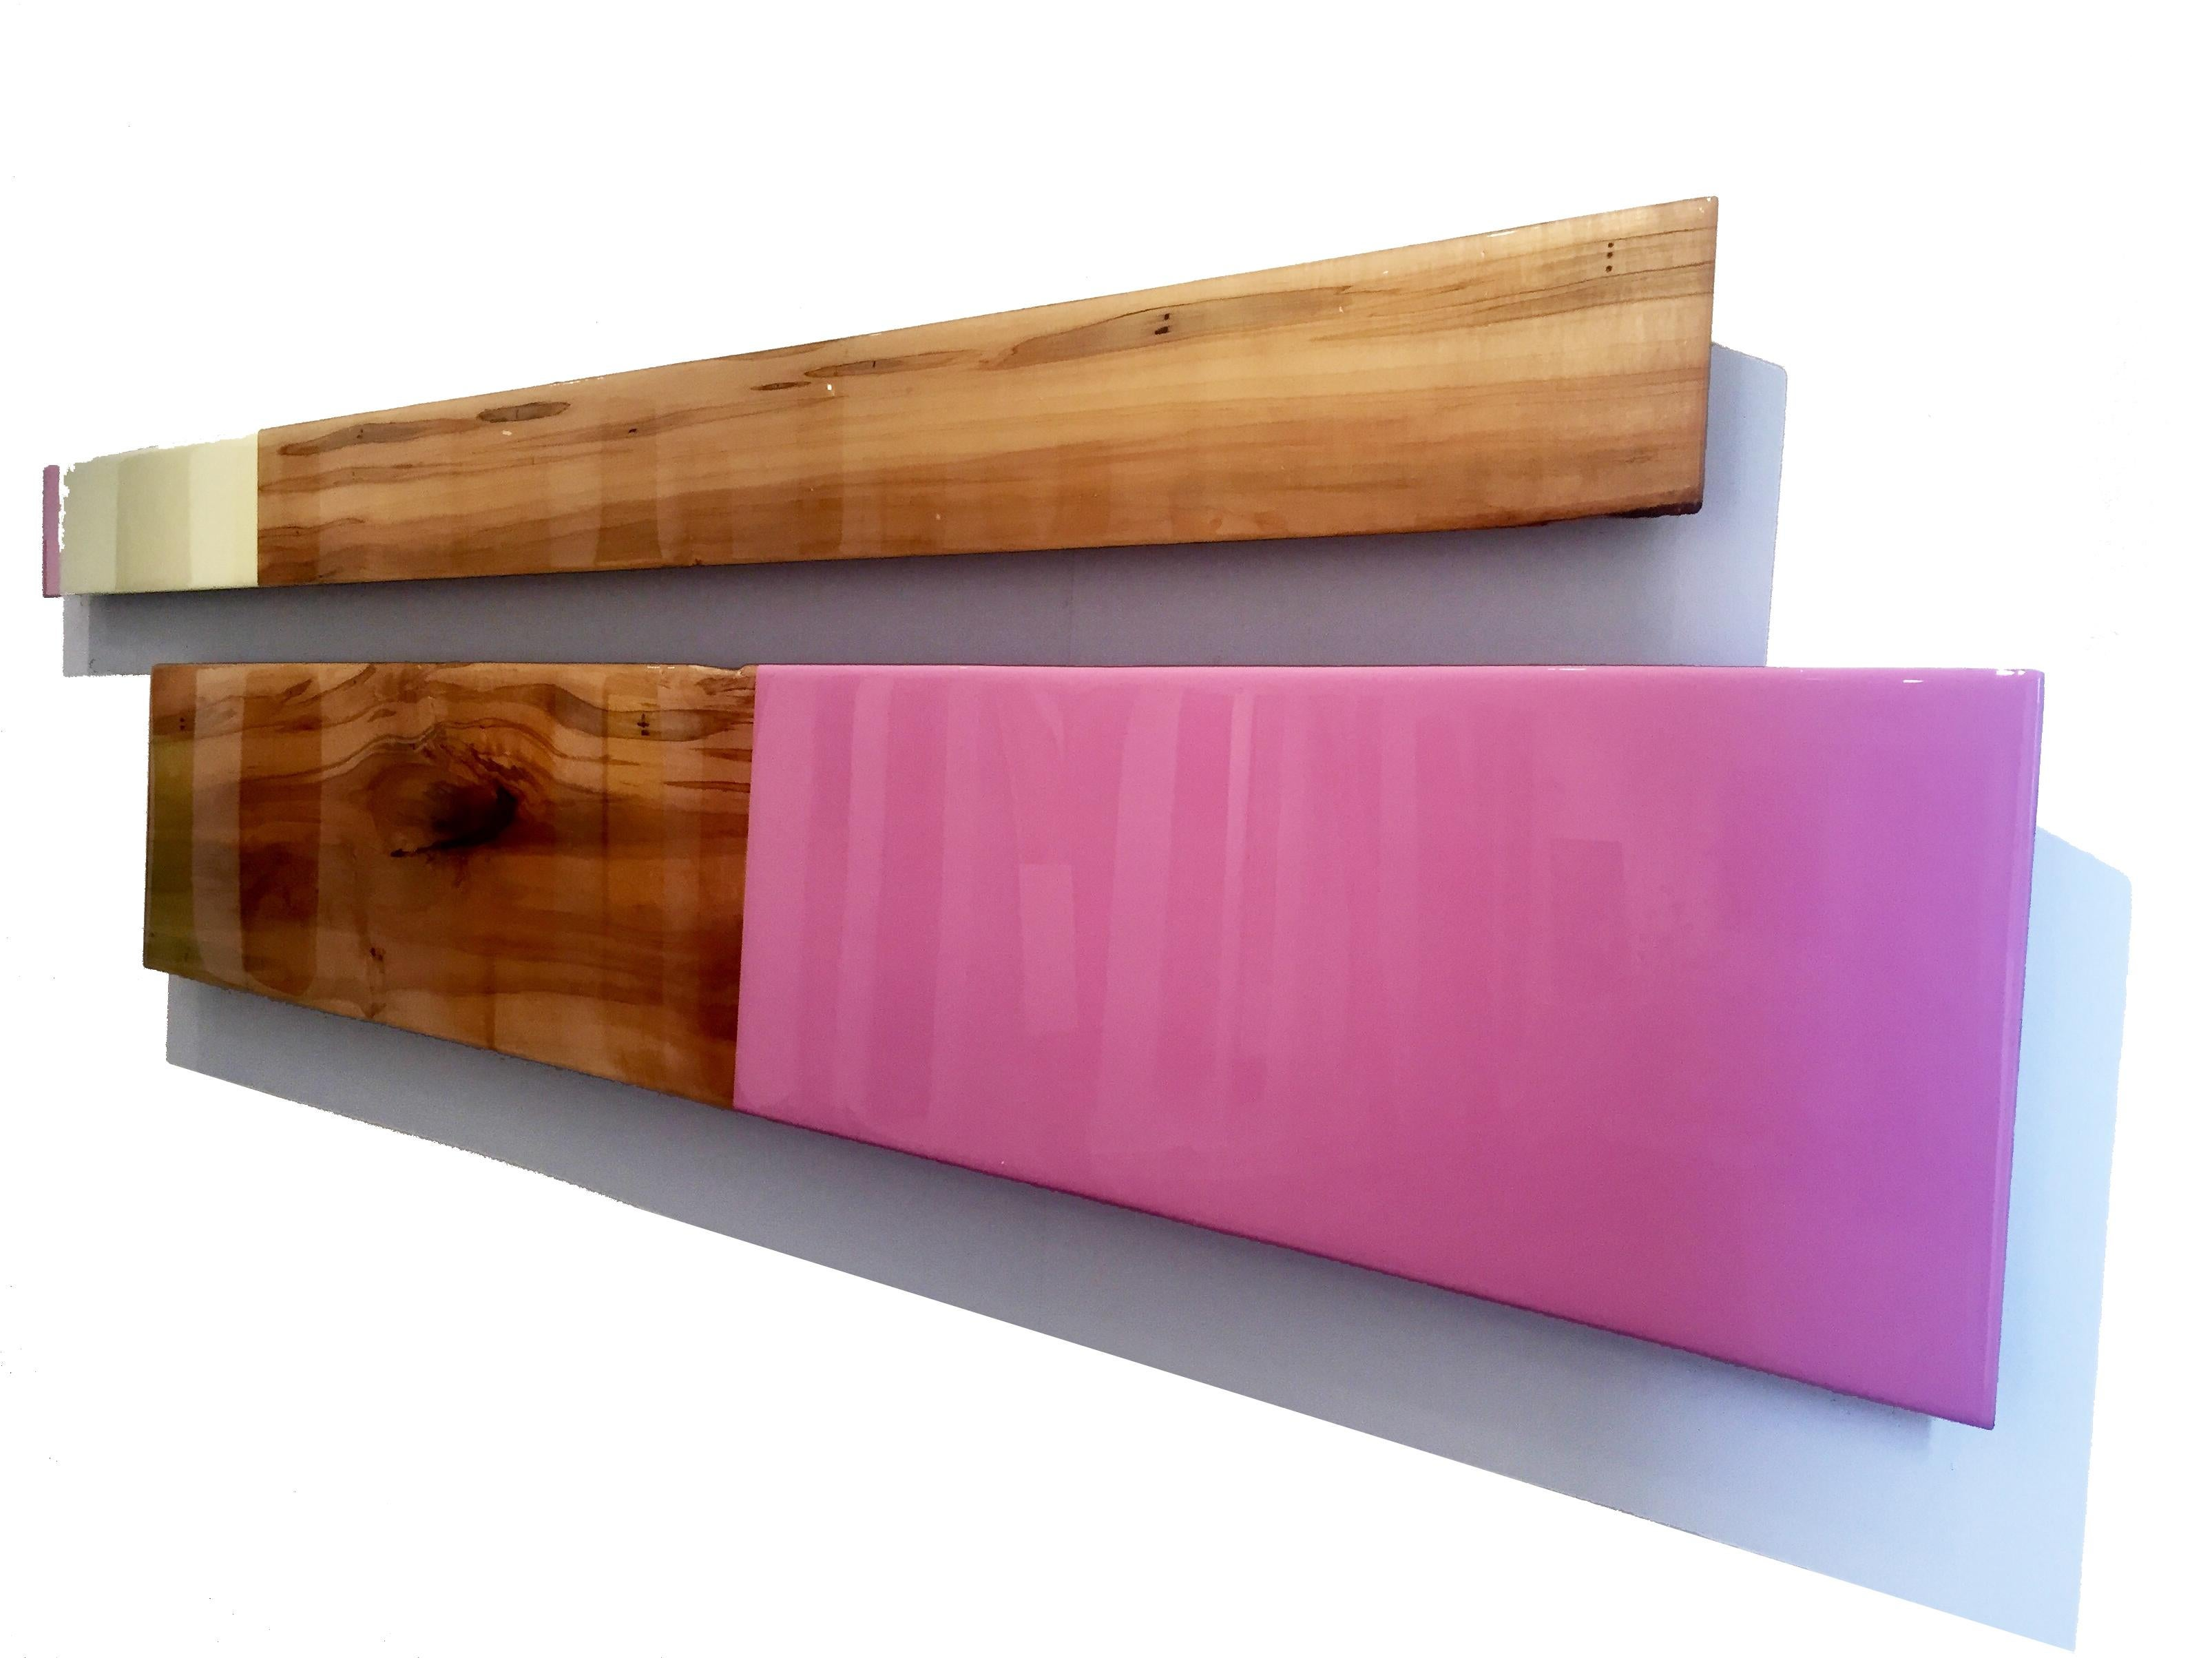 Leaner Set 2643, David E. Peterson, Contemporary Pastel Wooden Wall Sculpture